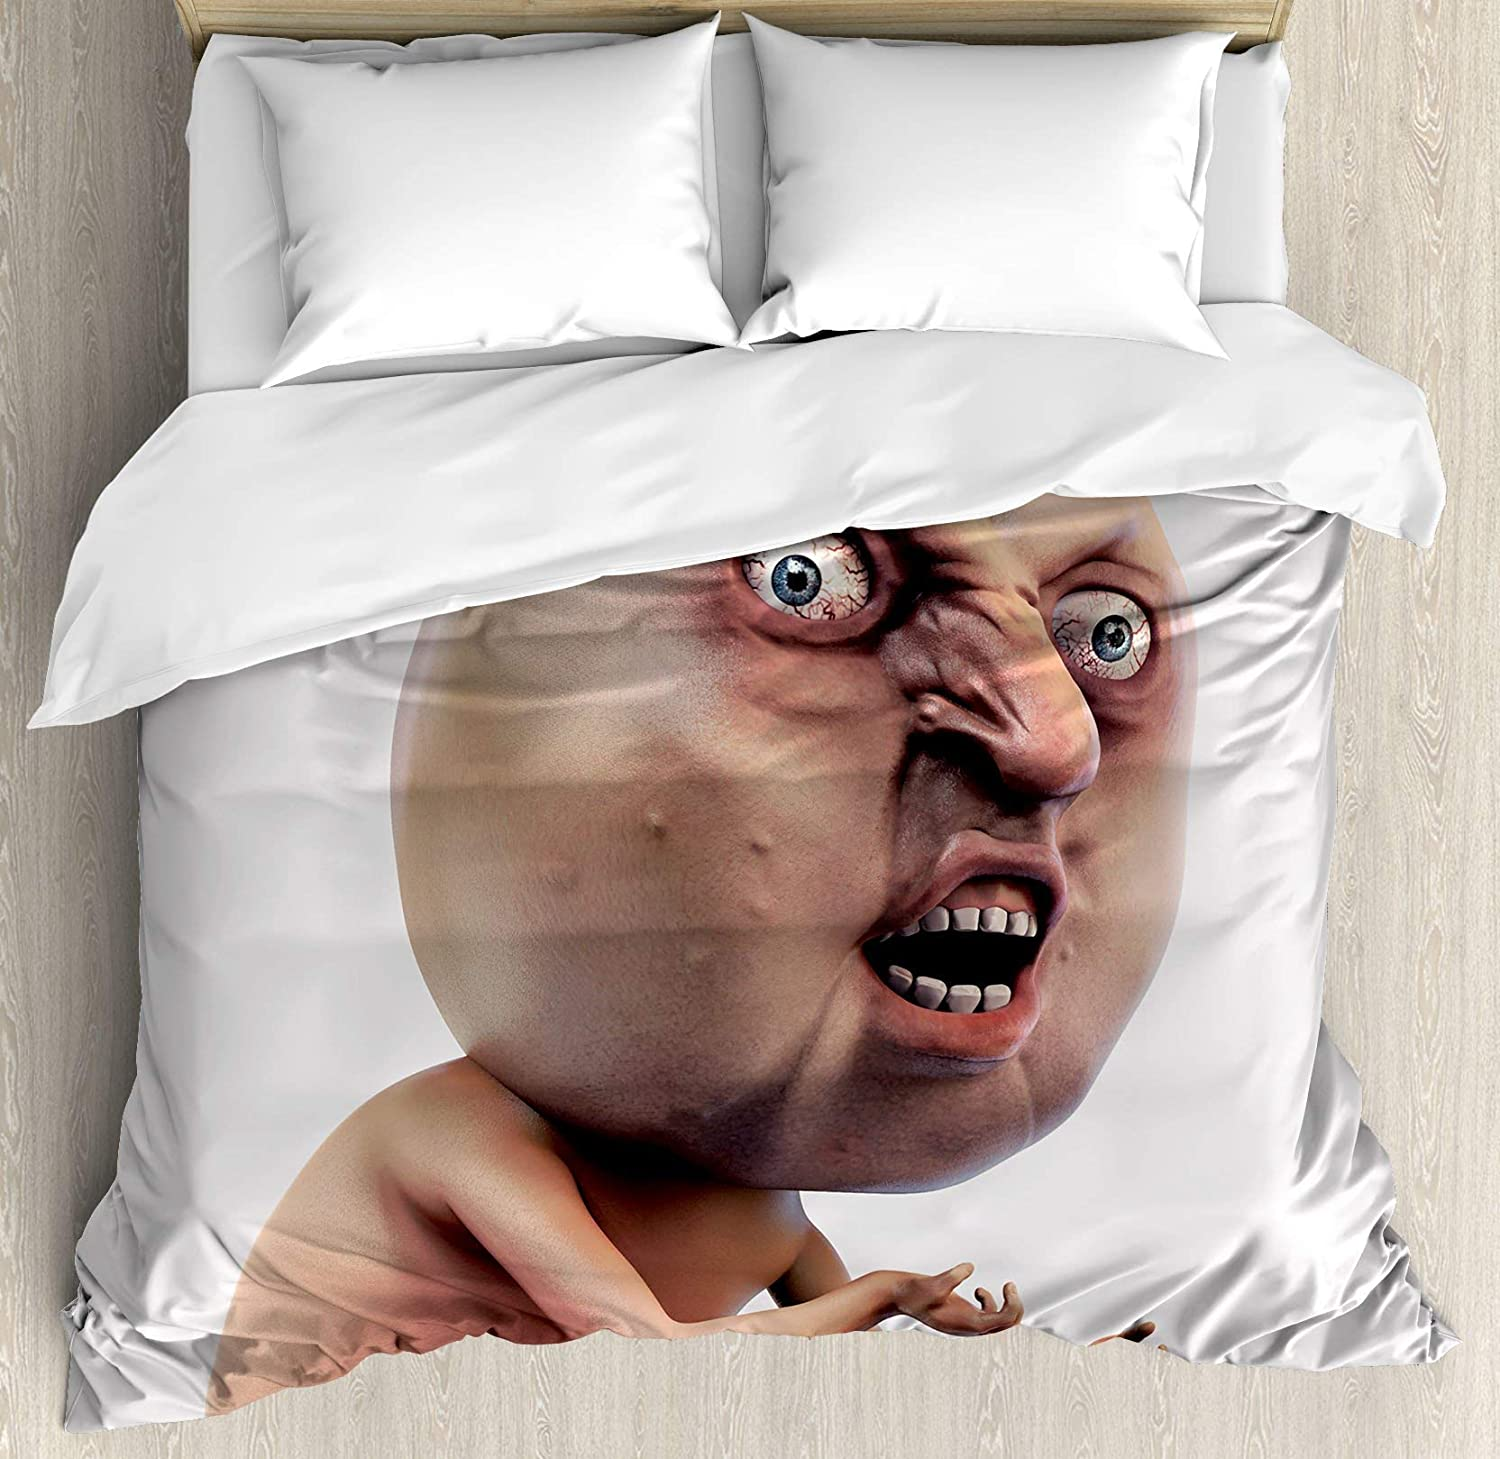 Amazon.com: USOPHIA Humor 4 Pieces Bed Sheets Set Full Size, Scary Internet Meme with Why You No Expression Angry Trolling Chat Digital Design Print Floral Duvet Cover Set, Peach: Home & Kitchen